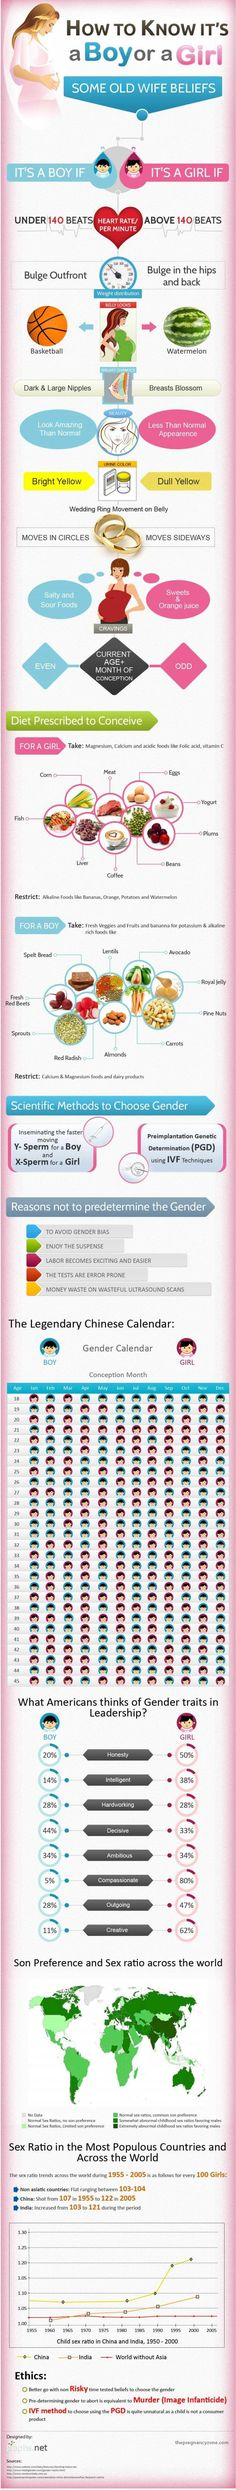 How To Know If You Are Having a Boy or a Girl - Gender Facts With Pregnancy Mostly wrong for me... 6 showed girl & 4 (including chinese birth chart) showed boy... He's definitely a boy!